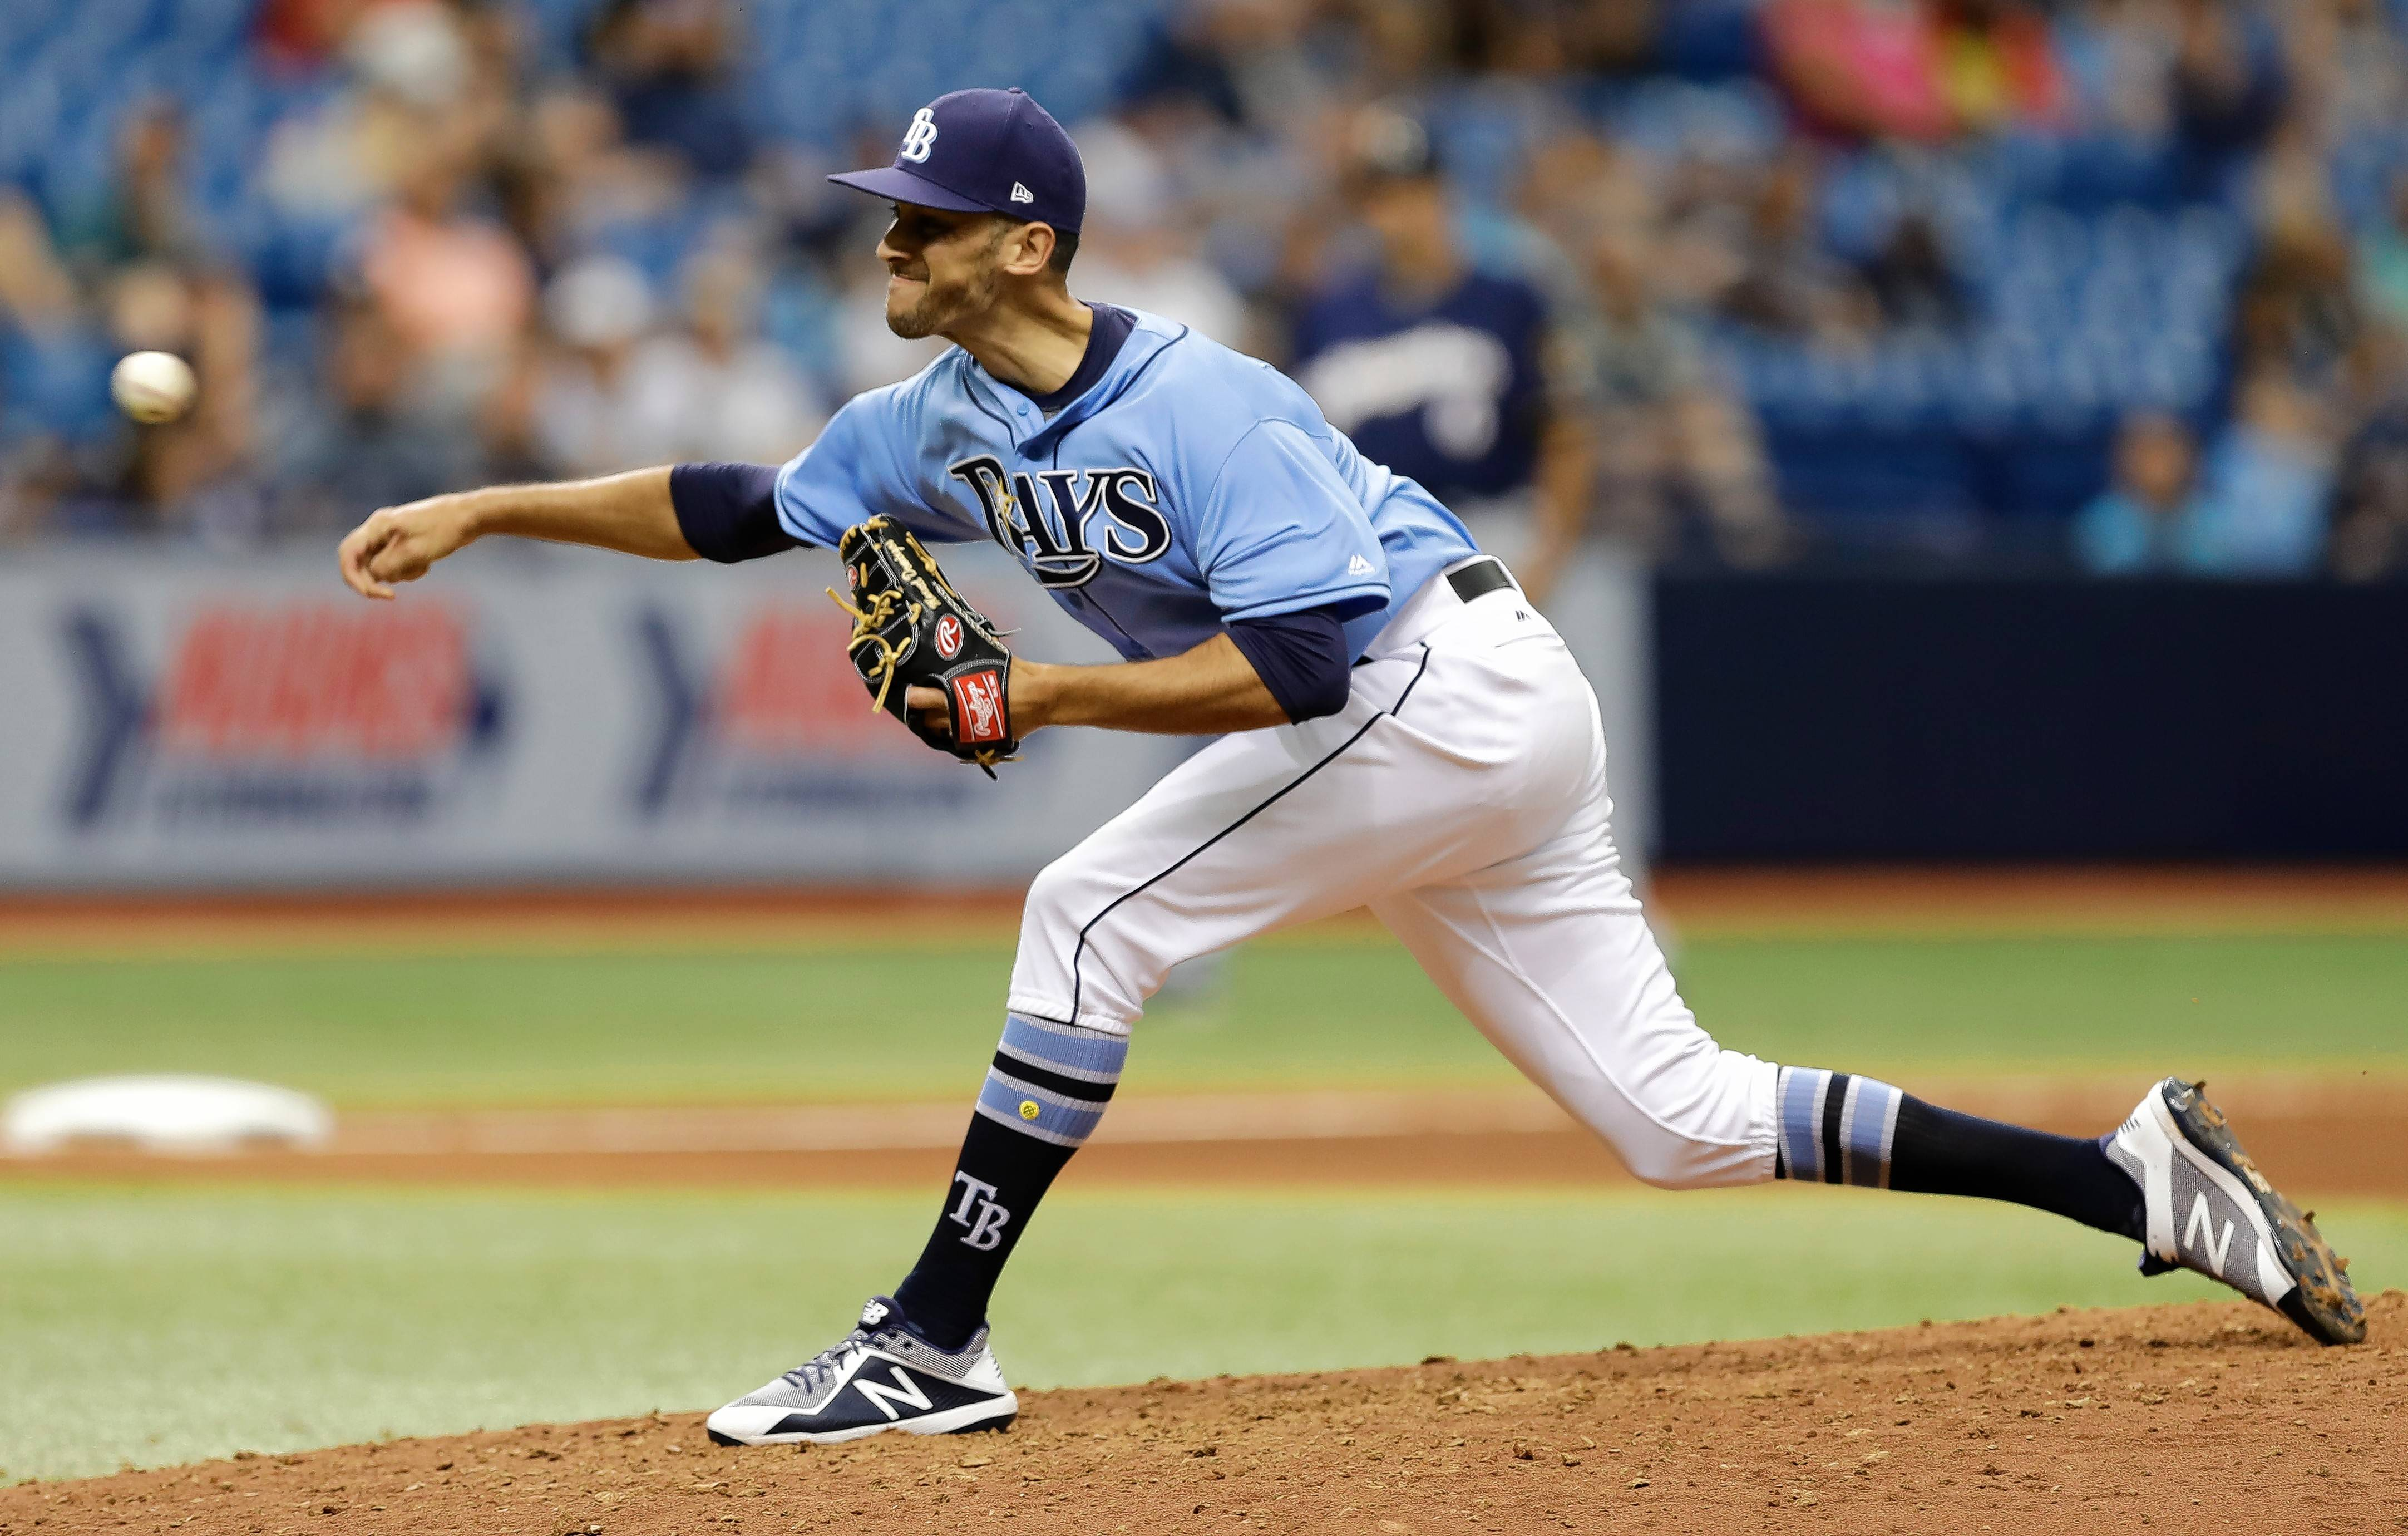 Tampa Bay Rays relief pitcher Steve Cishek posted a WHIP (walks plus hits per innings pitched) of 0.89 last season with Tampa and Seattle. His career WHIP is 1.16, and he has 121 saves over 8 seasons.